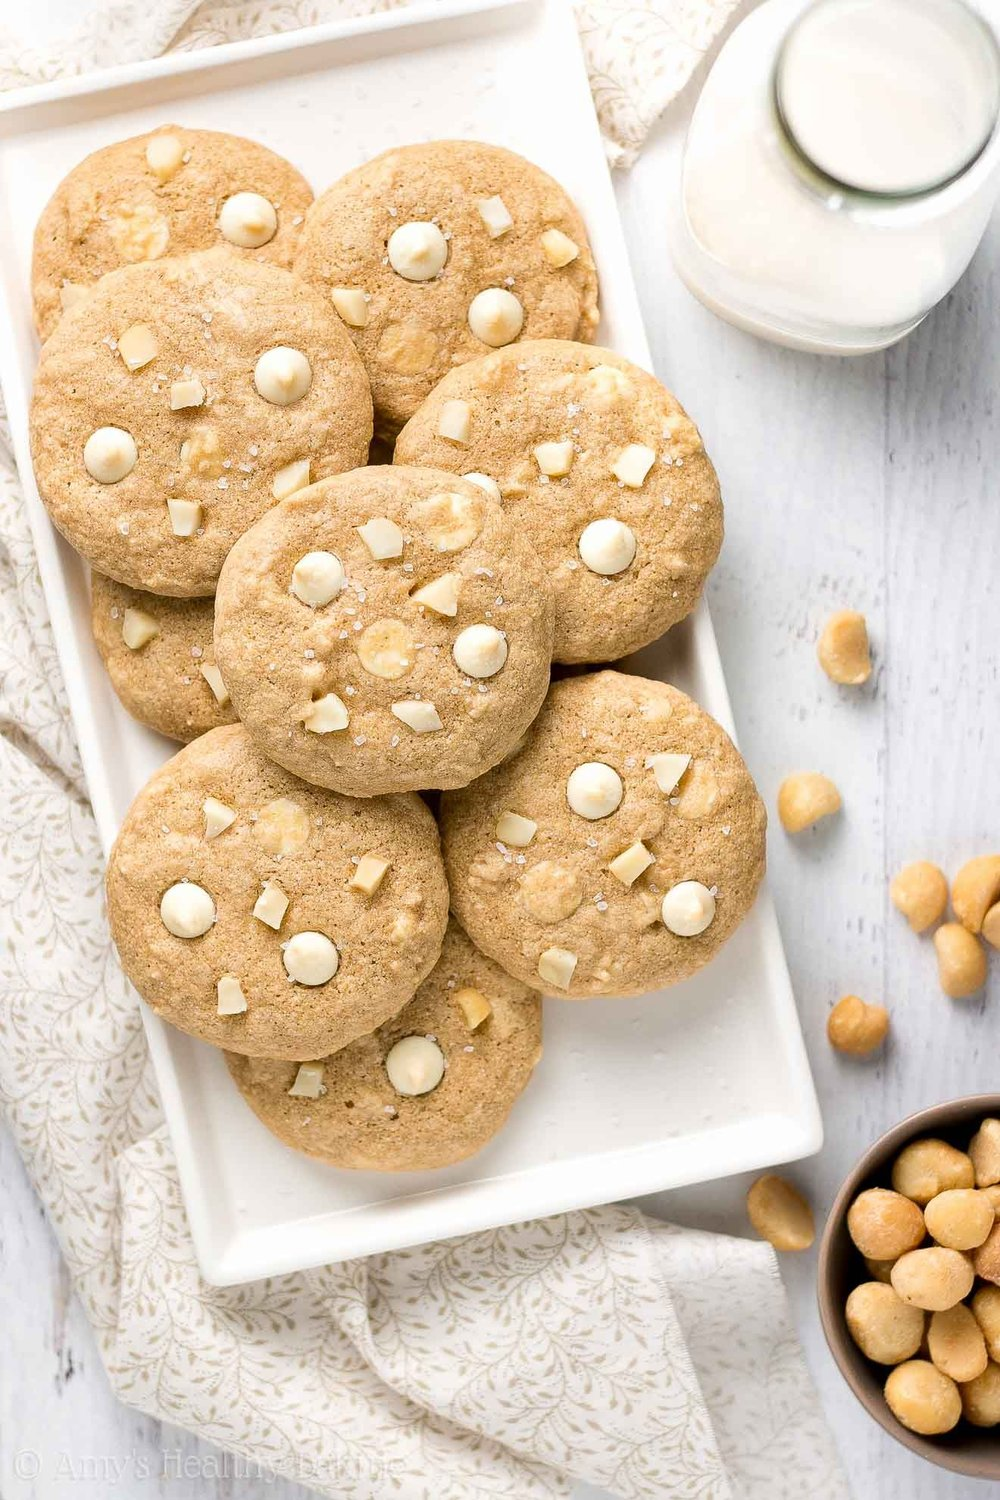 Macadamia nuts are known as an ingredient in making nut cookies or white chocolate due to its naturally sweet taste.